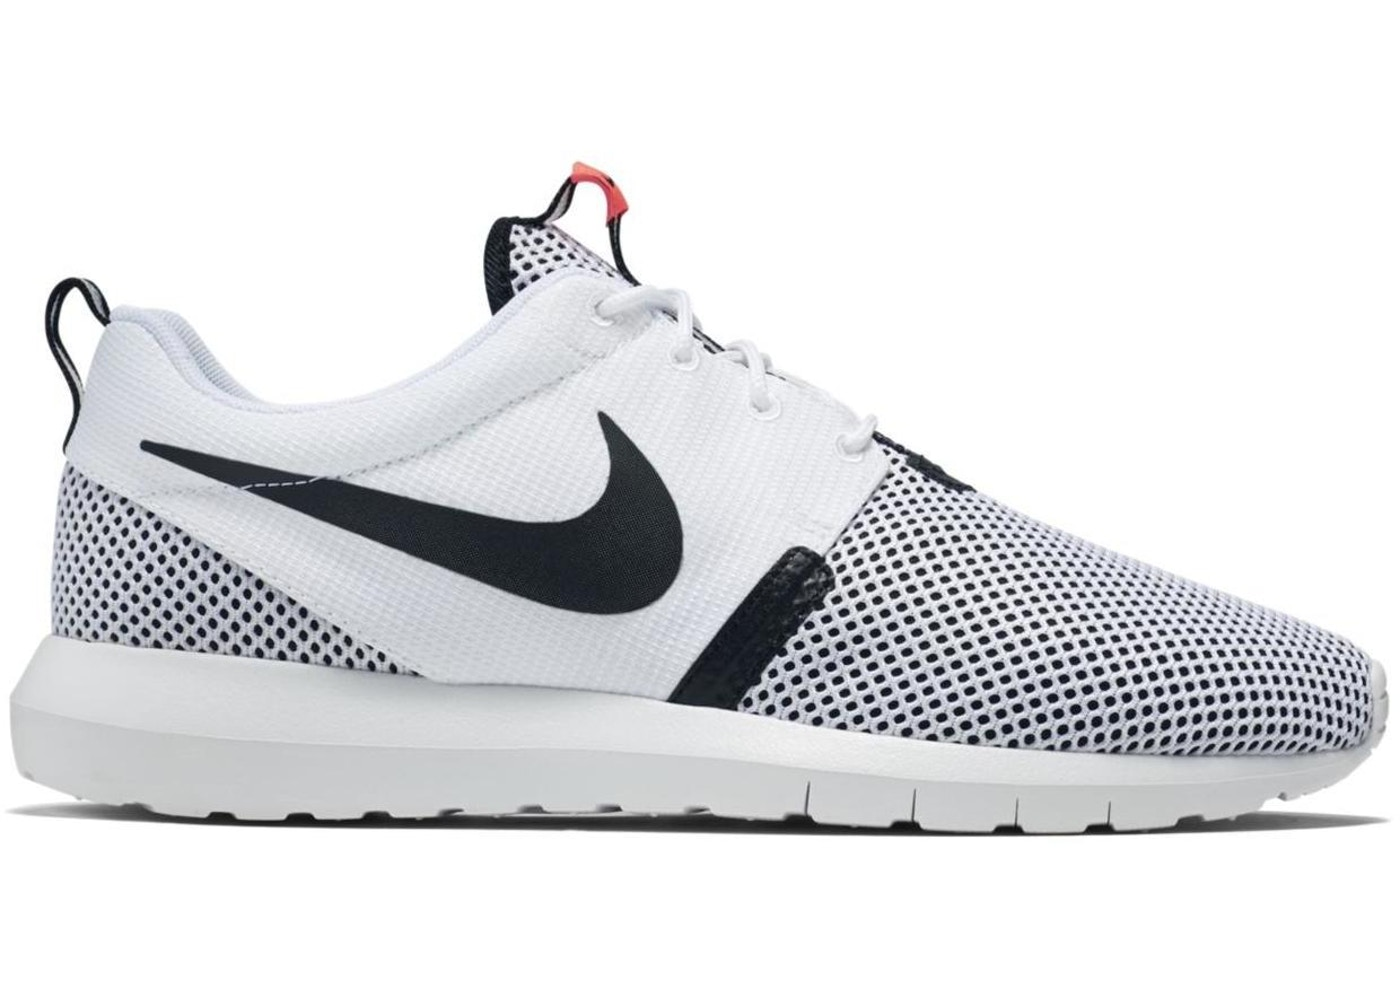 wholesale dealer 3f44f 9f3aa Nike Roshe Run Breeze White Black